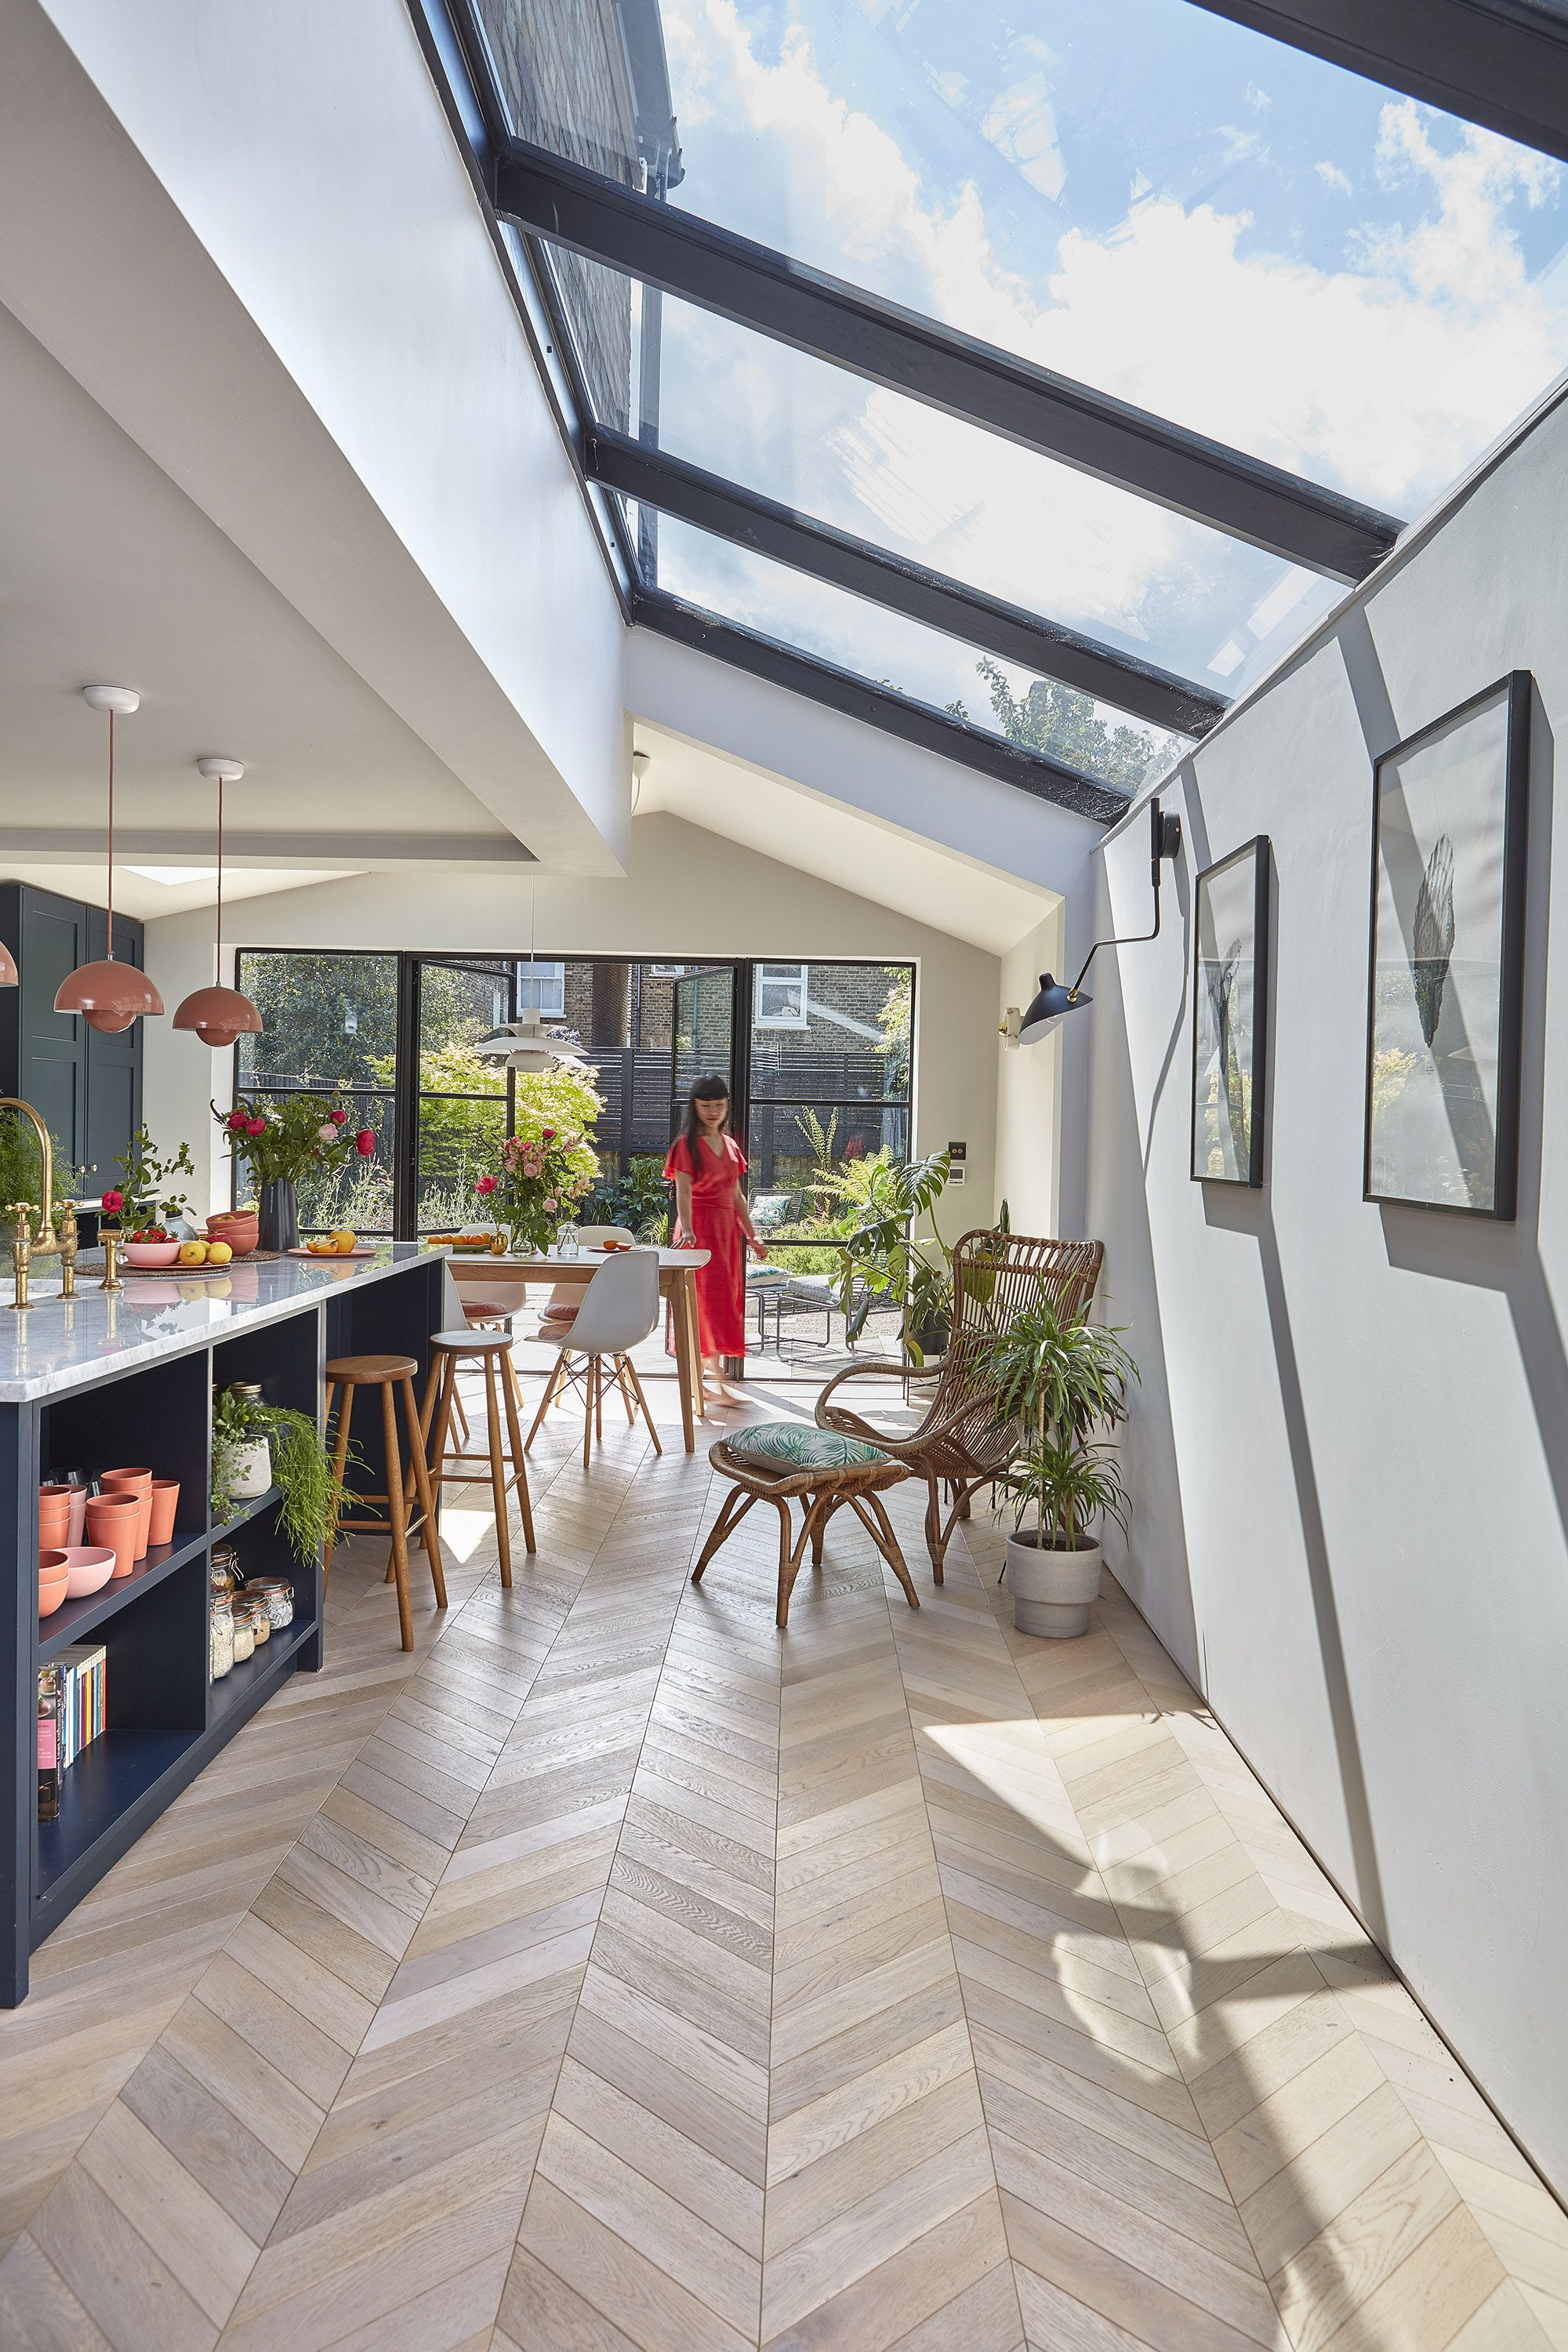 Planning a kitchen extension?